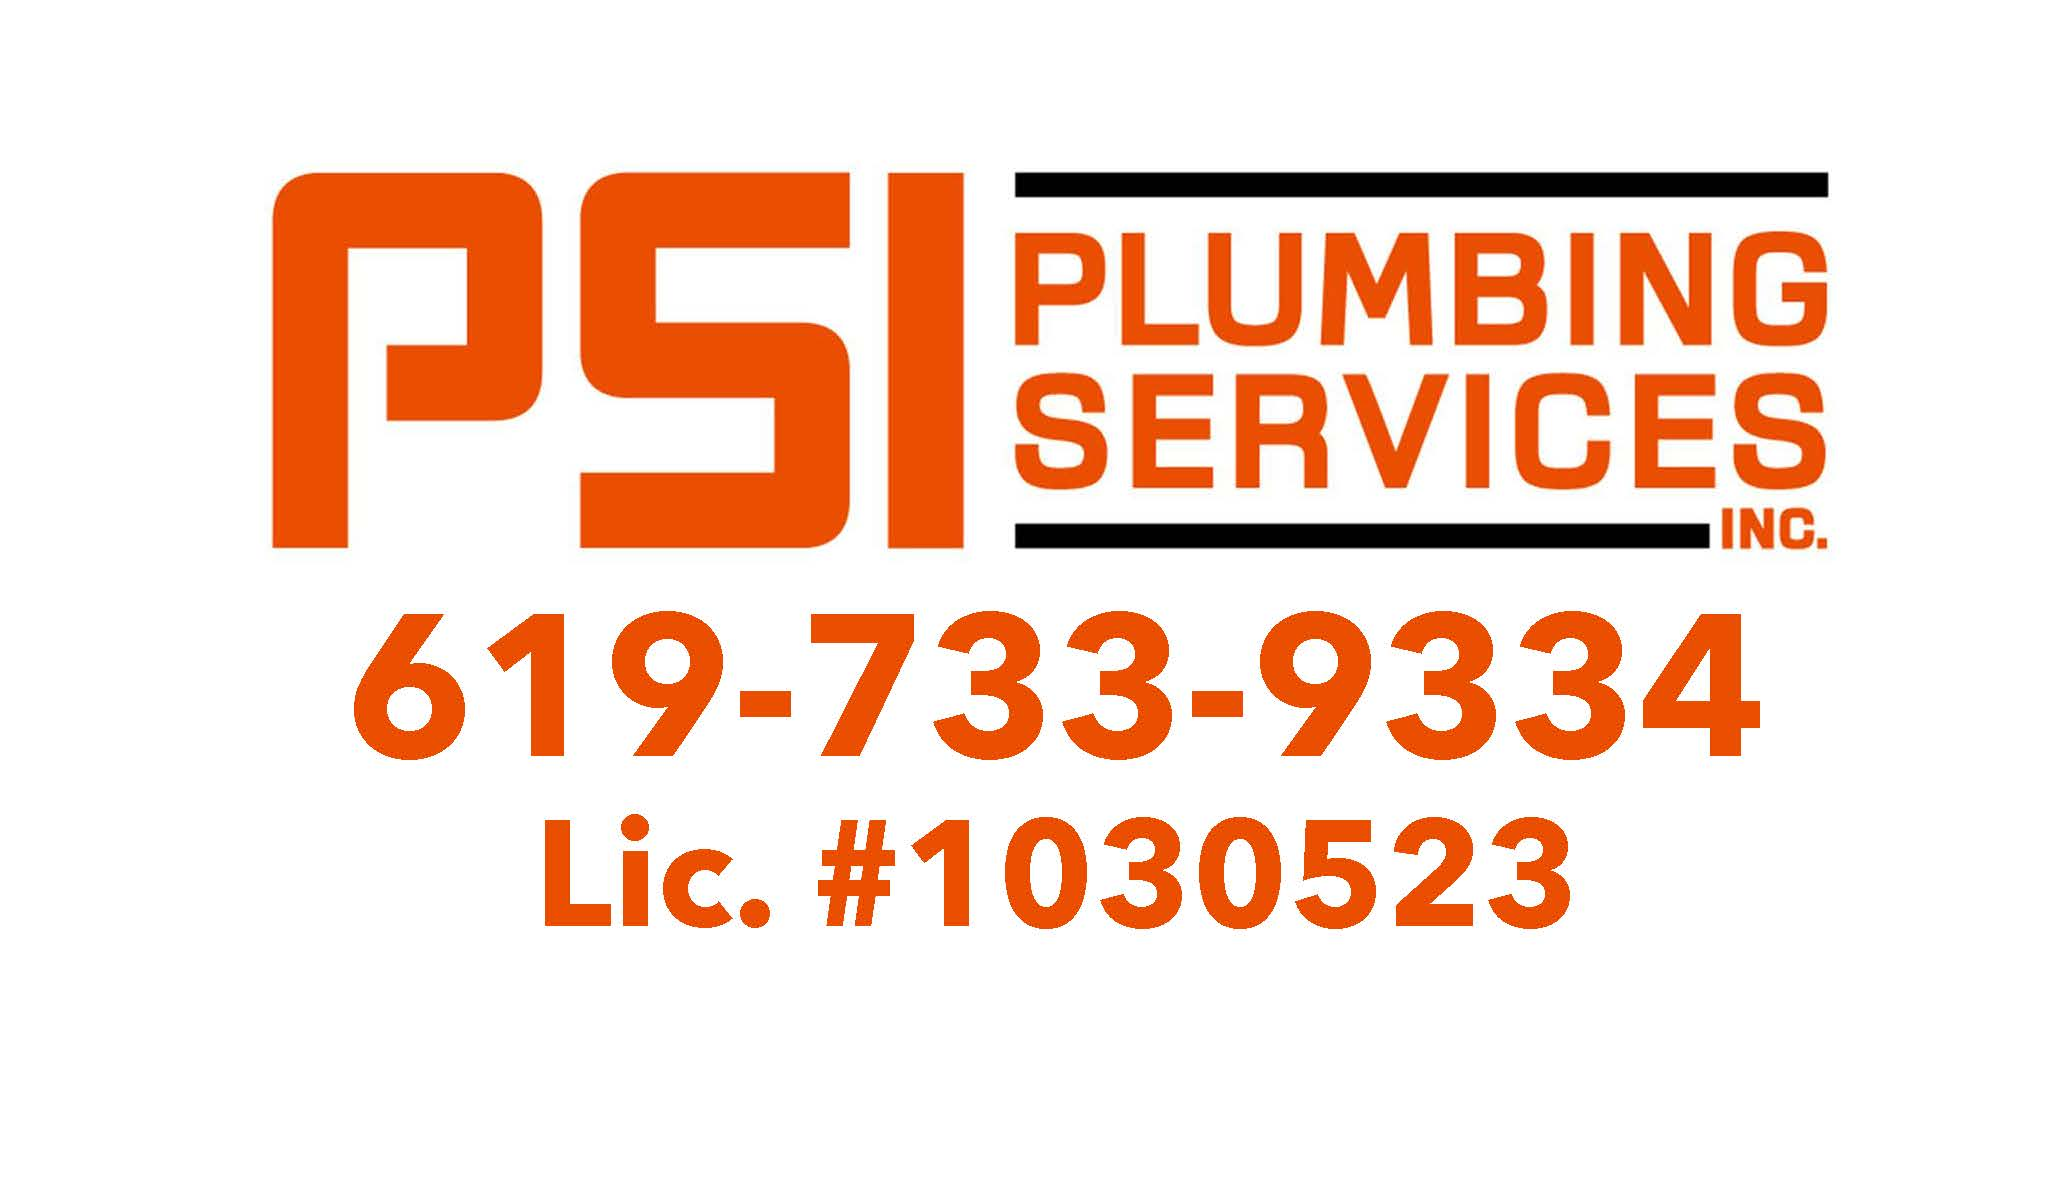 PSI Plumbing Services, Inc.